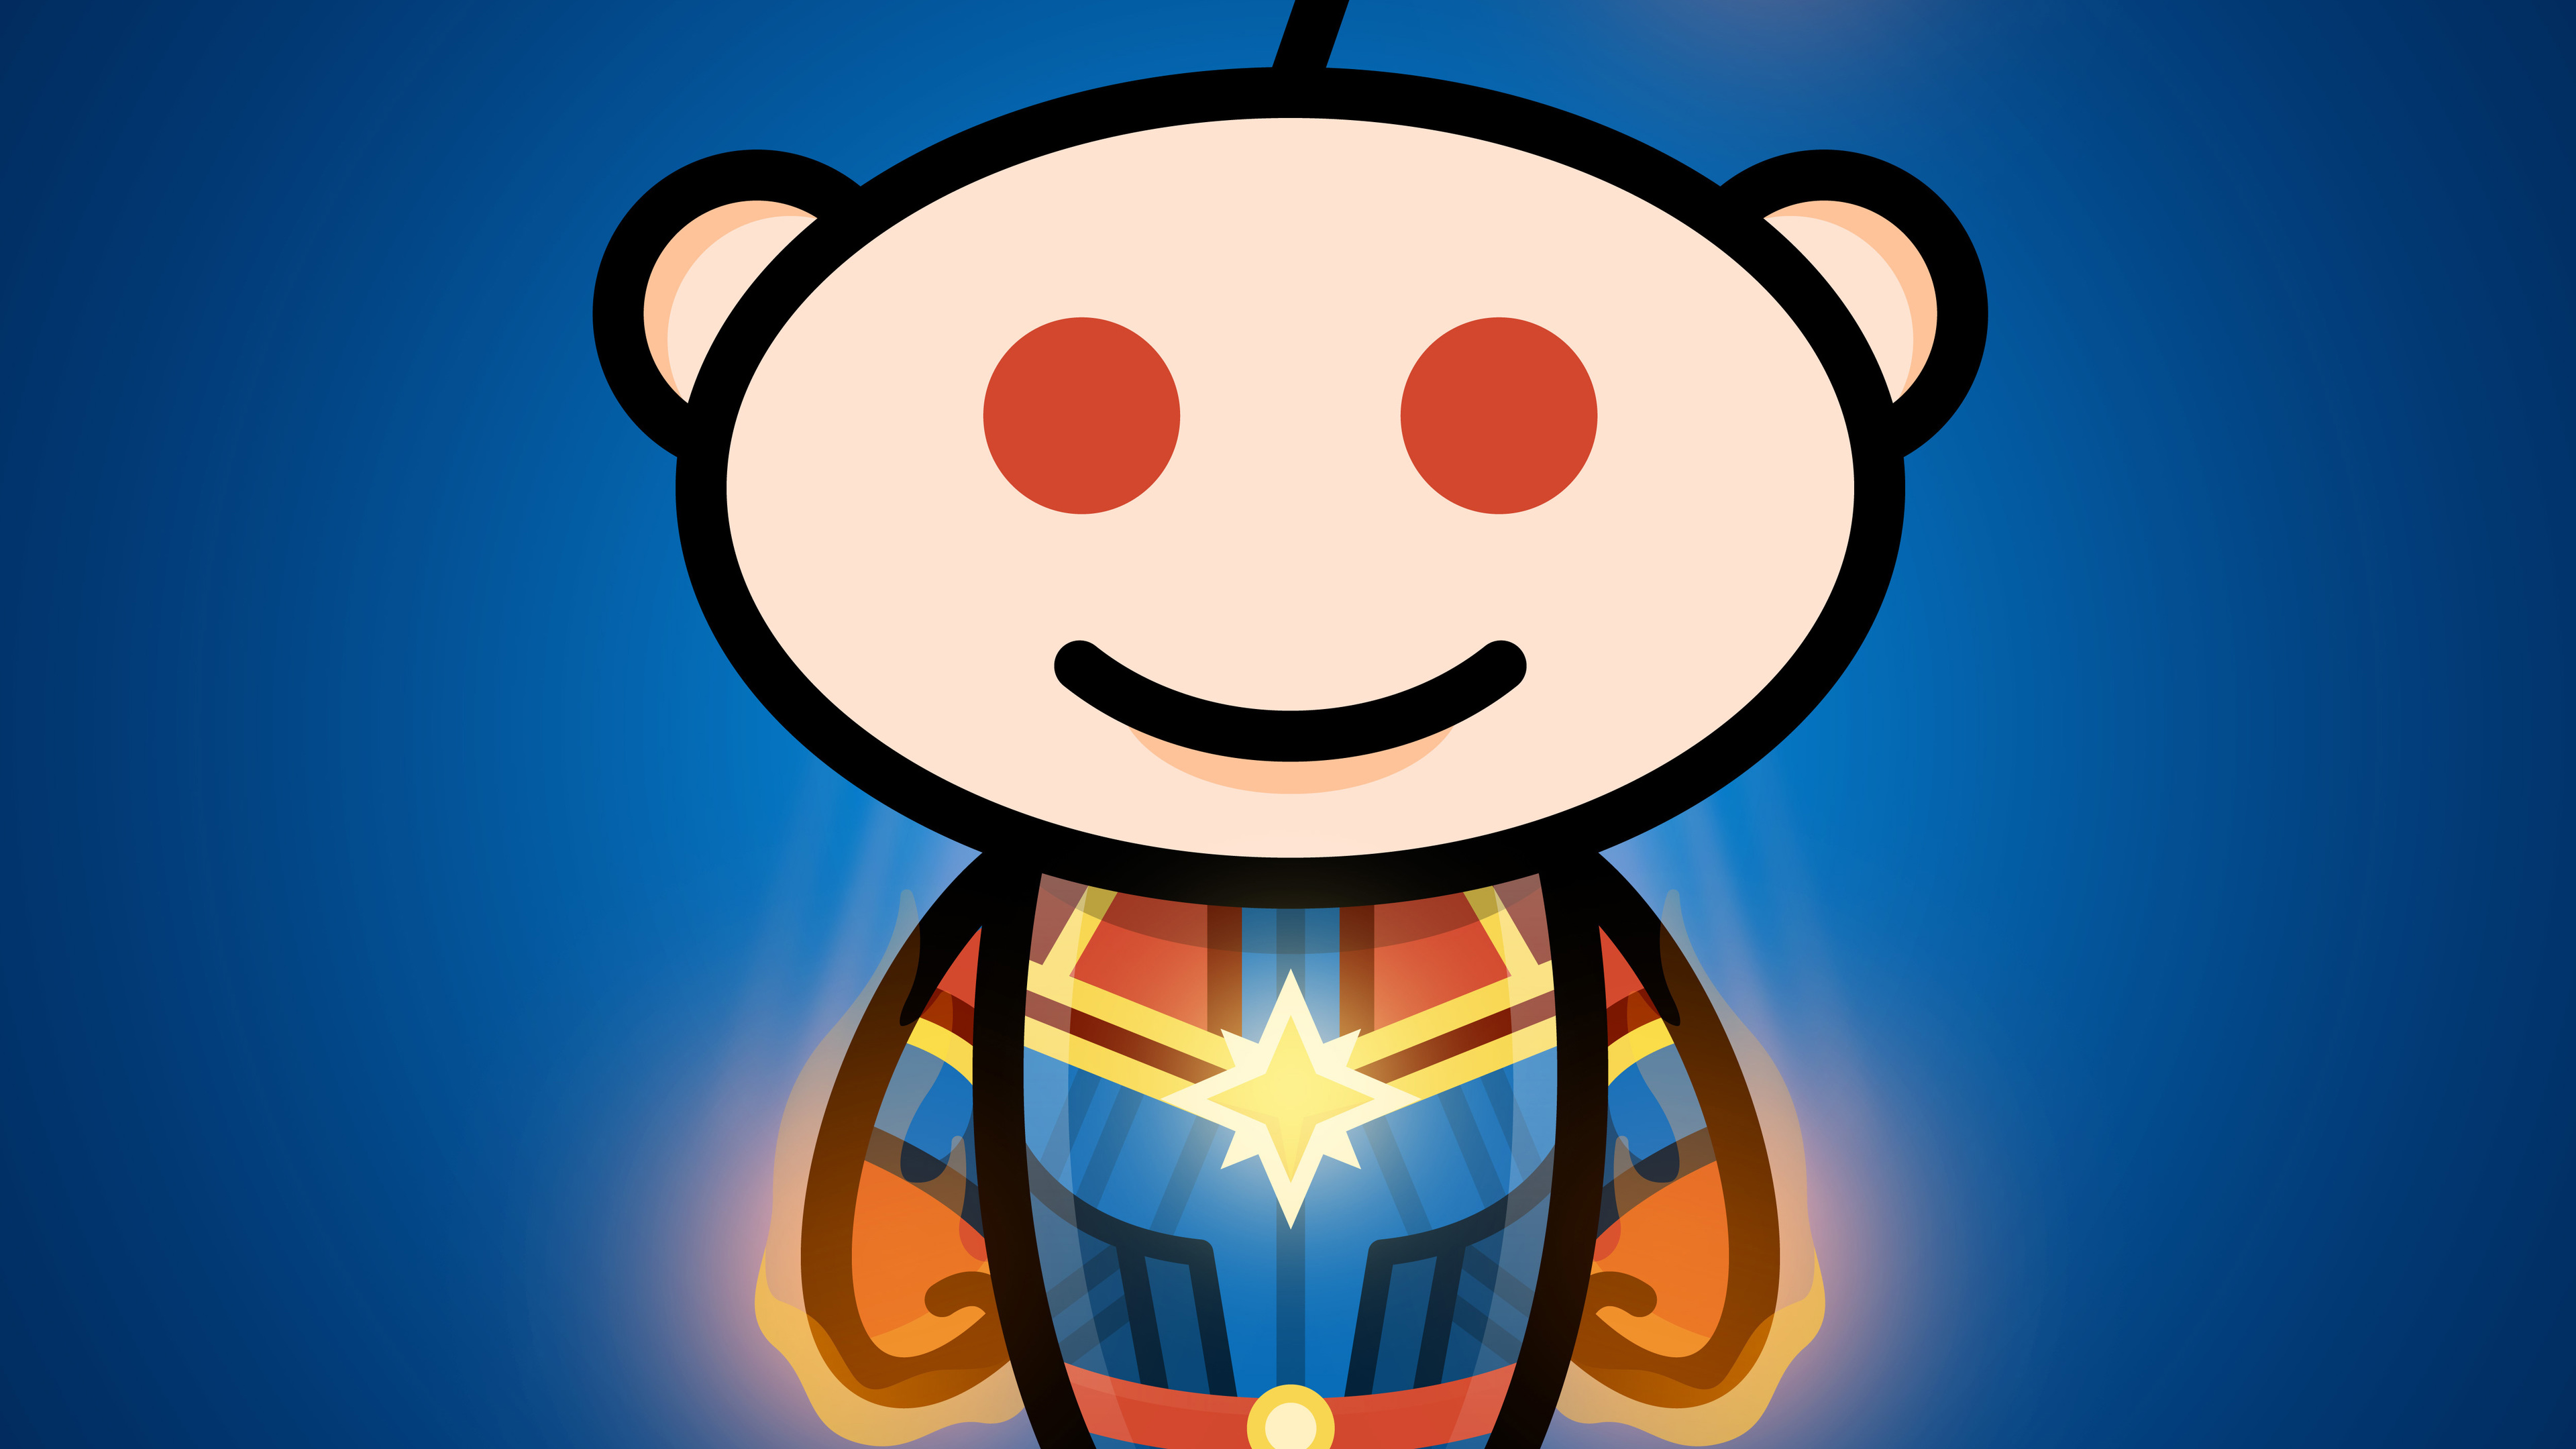 reddit captain marvel artwork 1537645889 - Reddit Captain Marvel Artwork - reddit wallpapers, hd-wallpapers, digital art wallpapers, captain marvel wallpapers, artwork wallpapers, 5k wallpapers, 4k-wallpapers